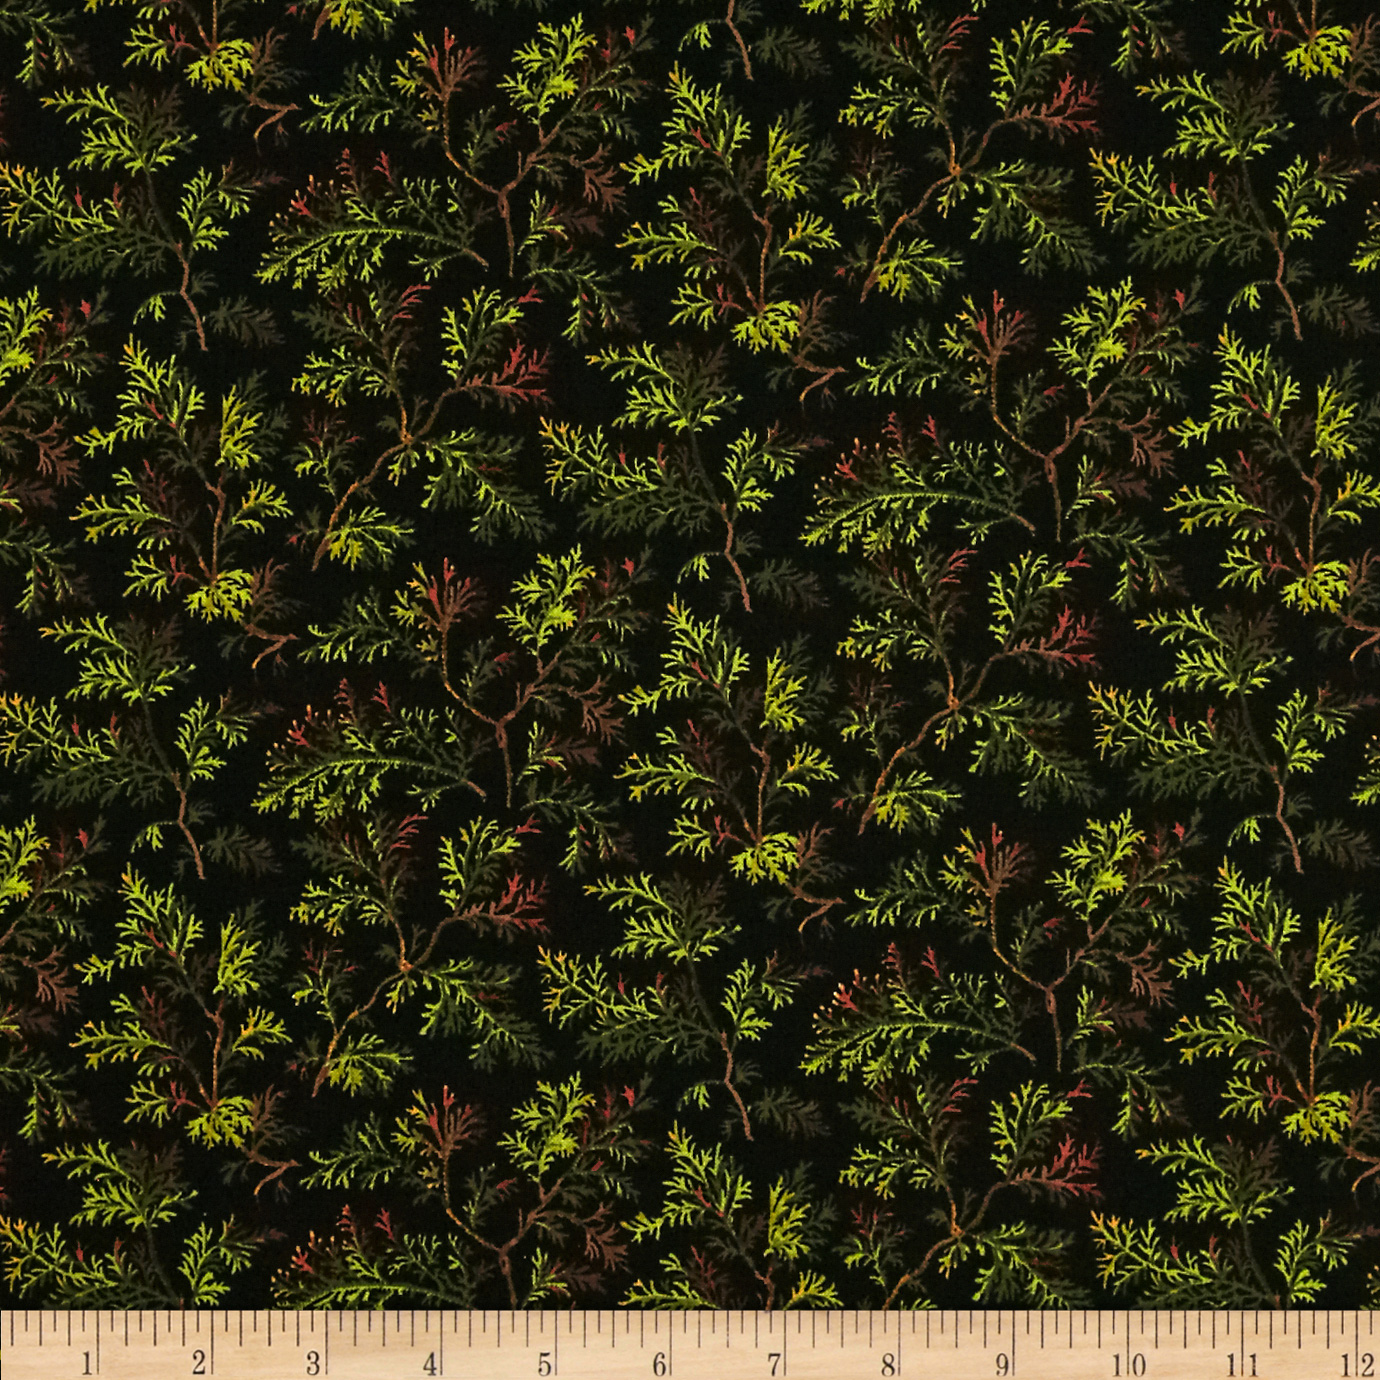 Timeless Treasures Cabin Tossed Sprigs Black Fabric